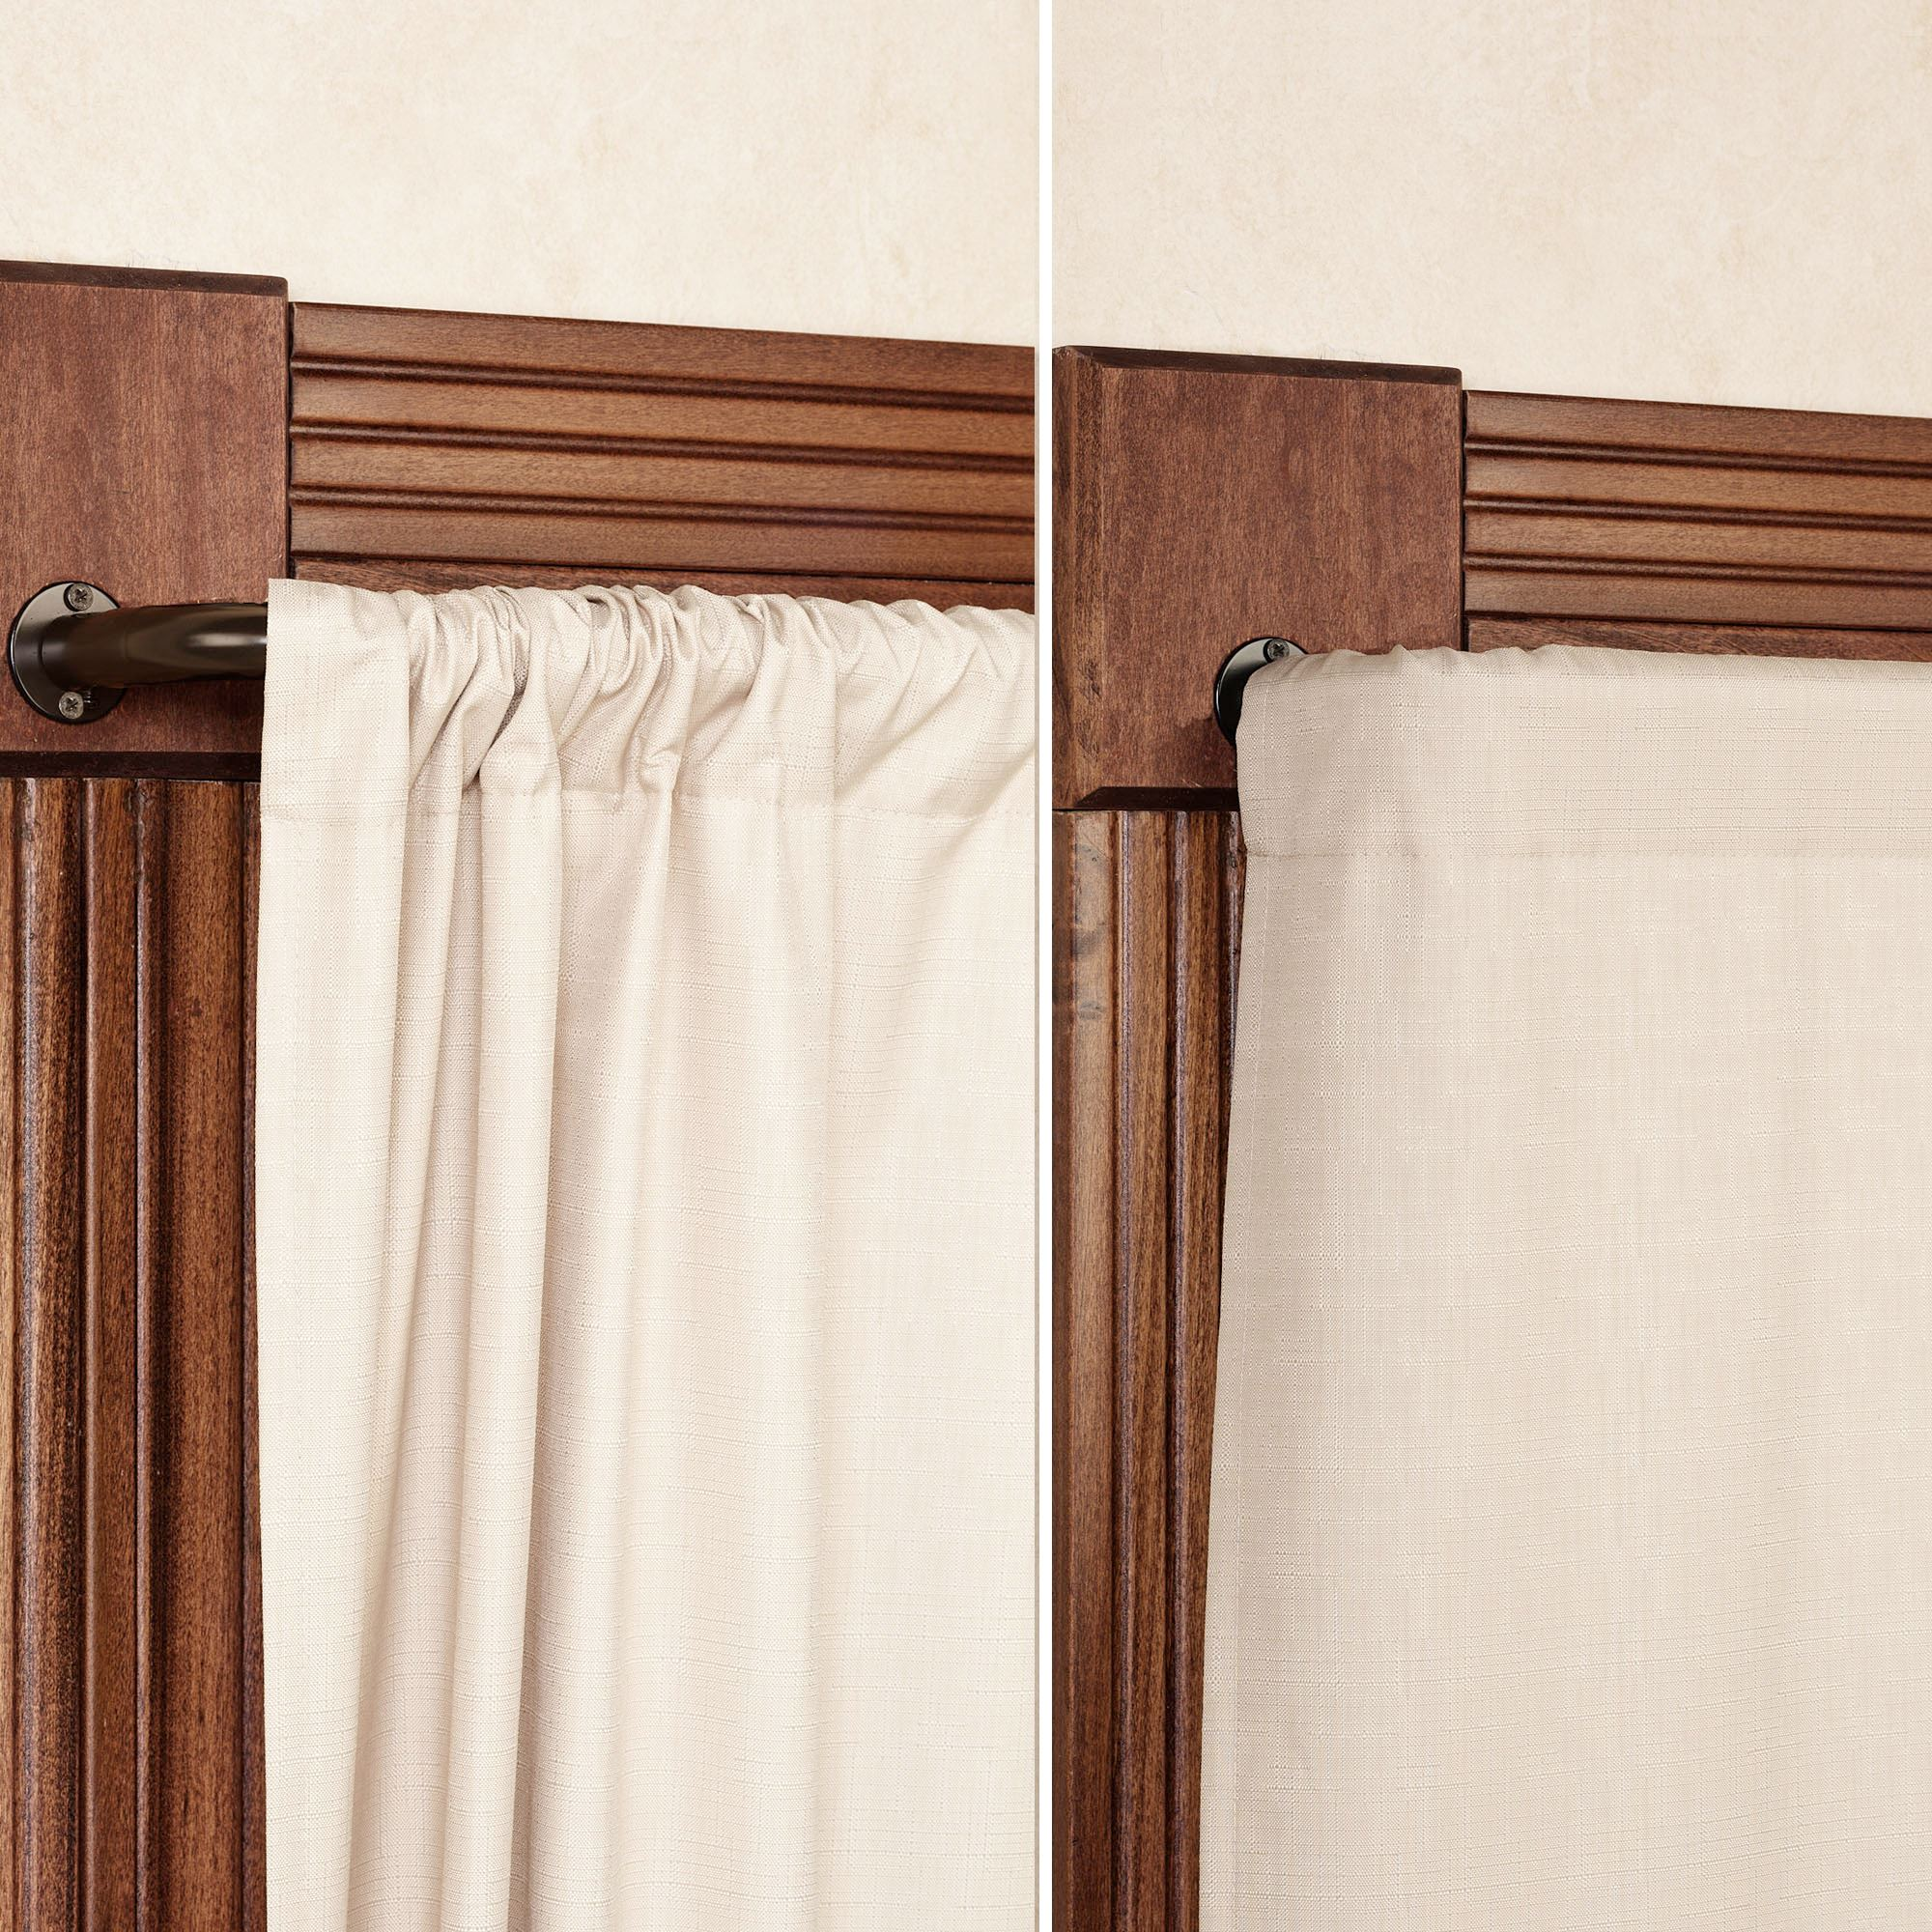 curtain intended rods for adjustable bronze curtains curtainworks preston your rod astounding idea house